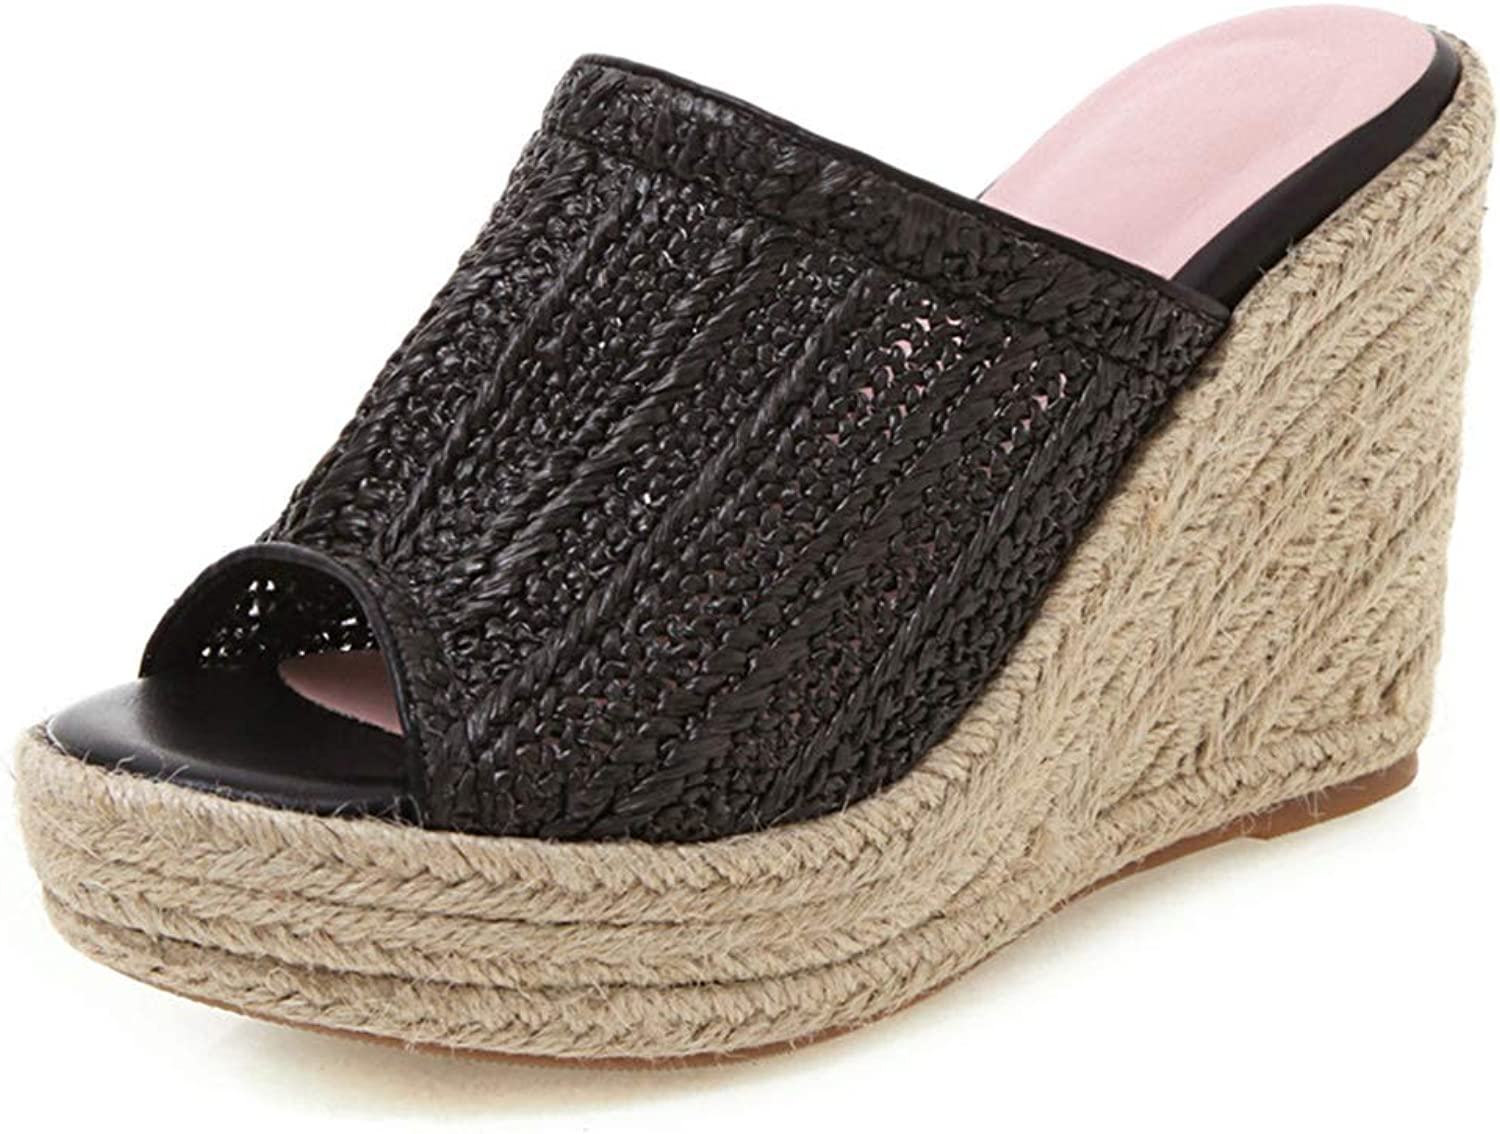 DoraTasia Women's Hand-Woven Slipper Summer Woven Leather Wedge shoes Slippers Open Toe Sandals